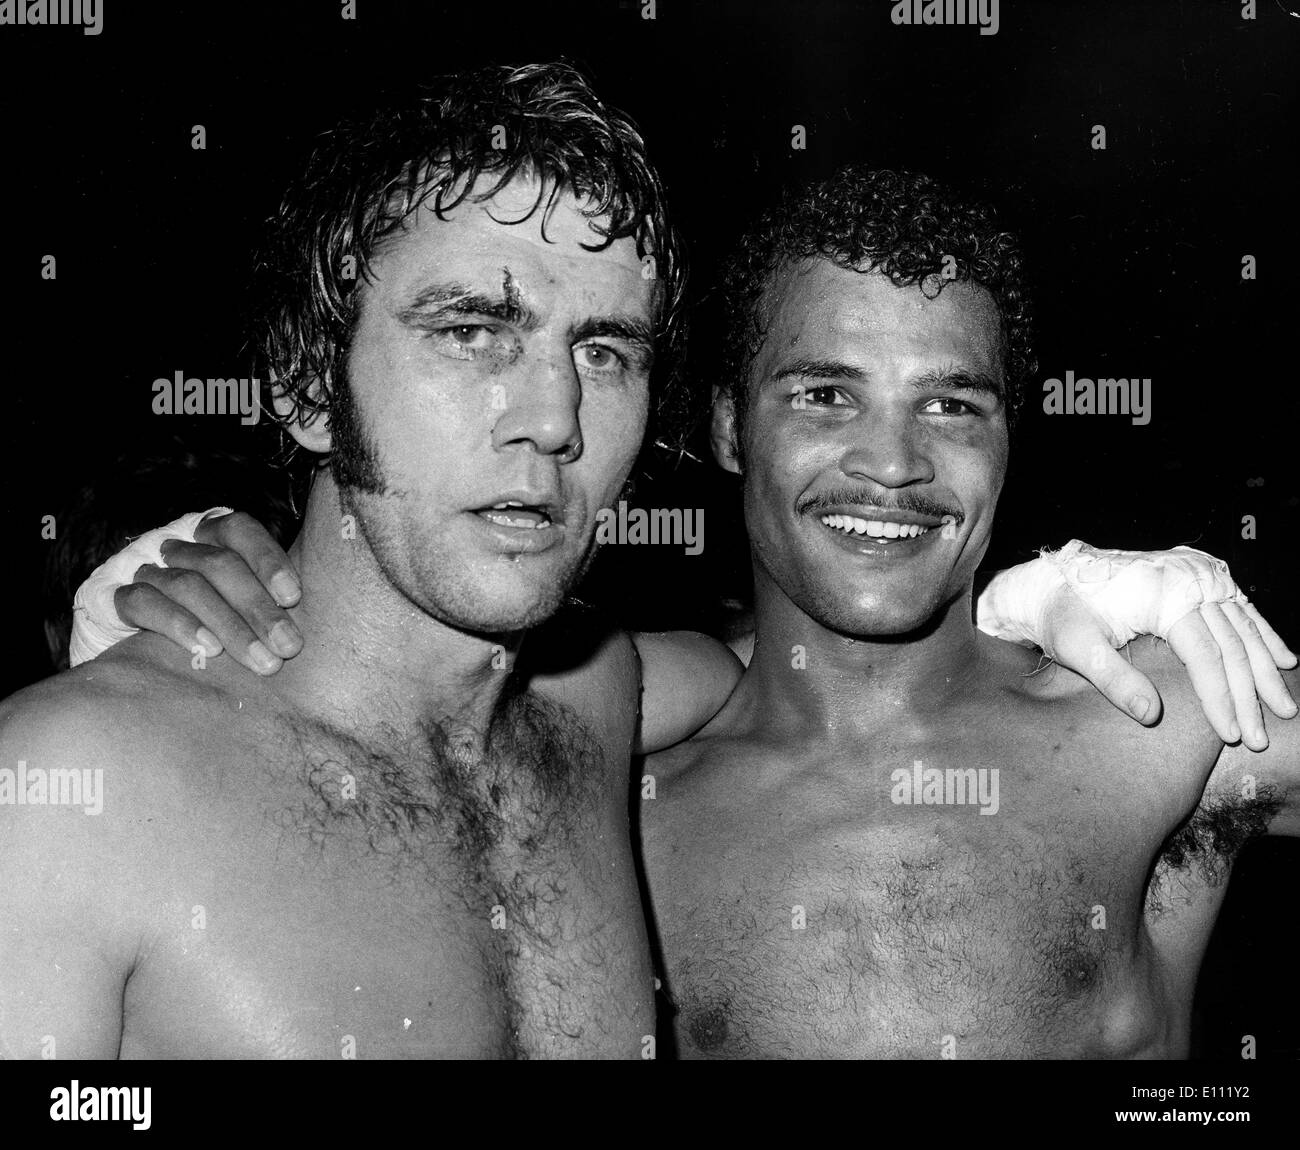 Jan. 01, 1975 - Circa 1970s, location unknown. JOHN CONTEH (R) (born 27 May 1951 in Toxteth, Liverpool, England) is a British former boxer who was world light-heavyweight boxing champion.. - Stock Image